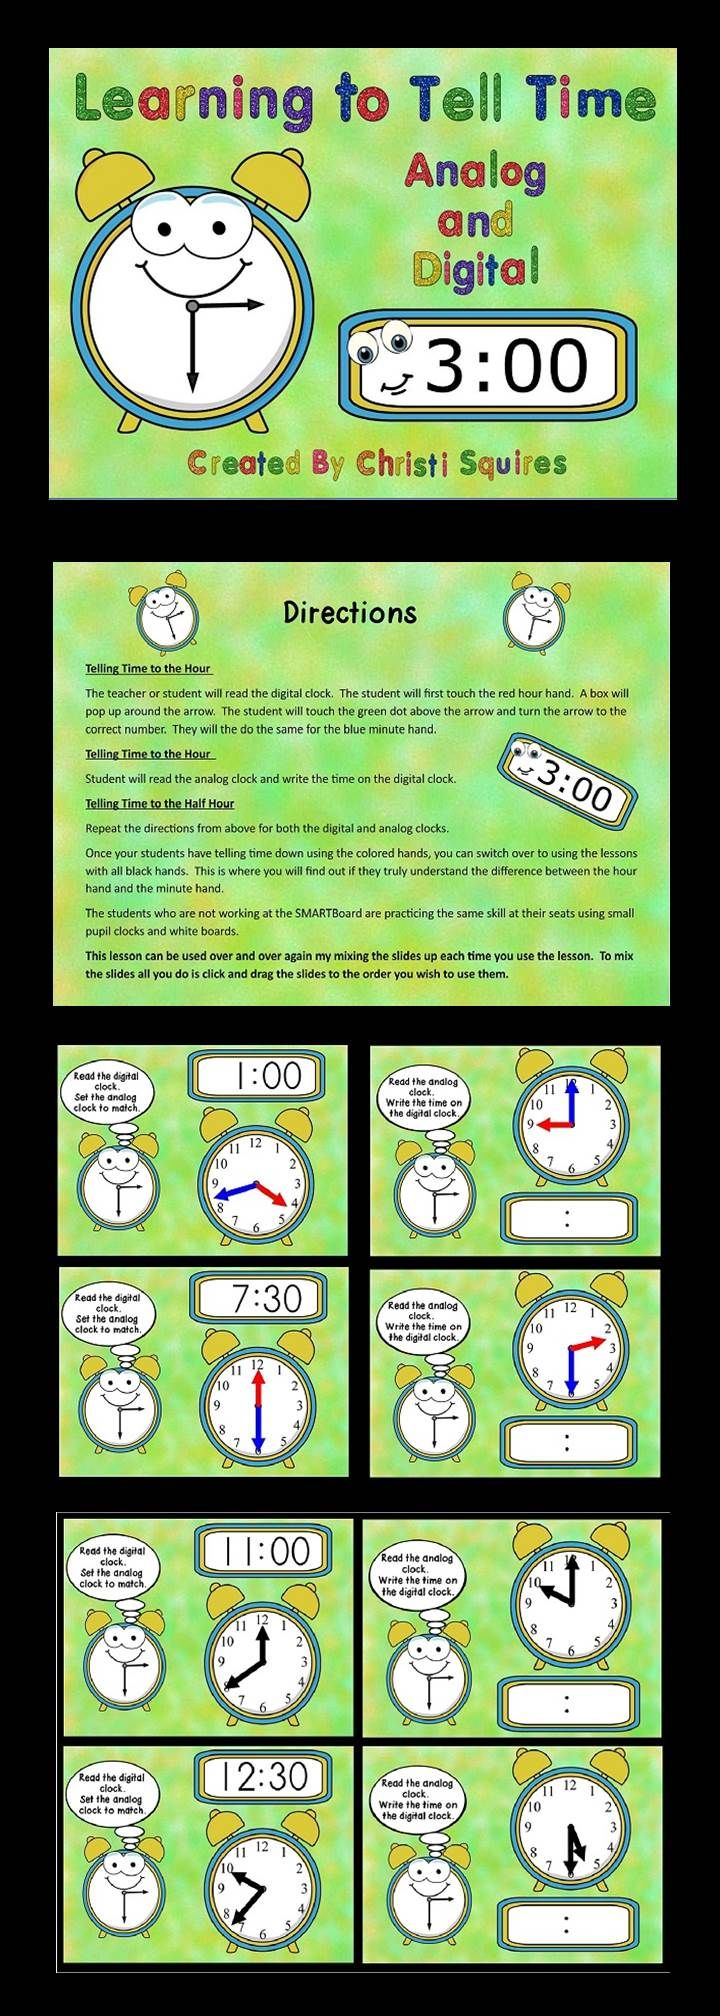 Worksheet Telling Time To The Half Hour Lesson Plans 1000 ideas about analogue clocks on pinterest telling time fry learning to tell analog and digital smartboard lesson this will teach the